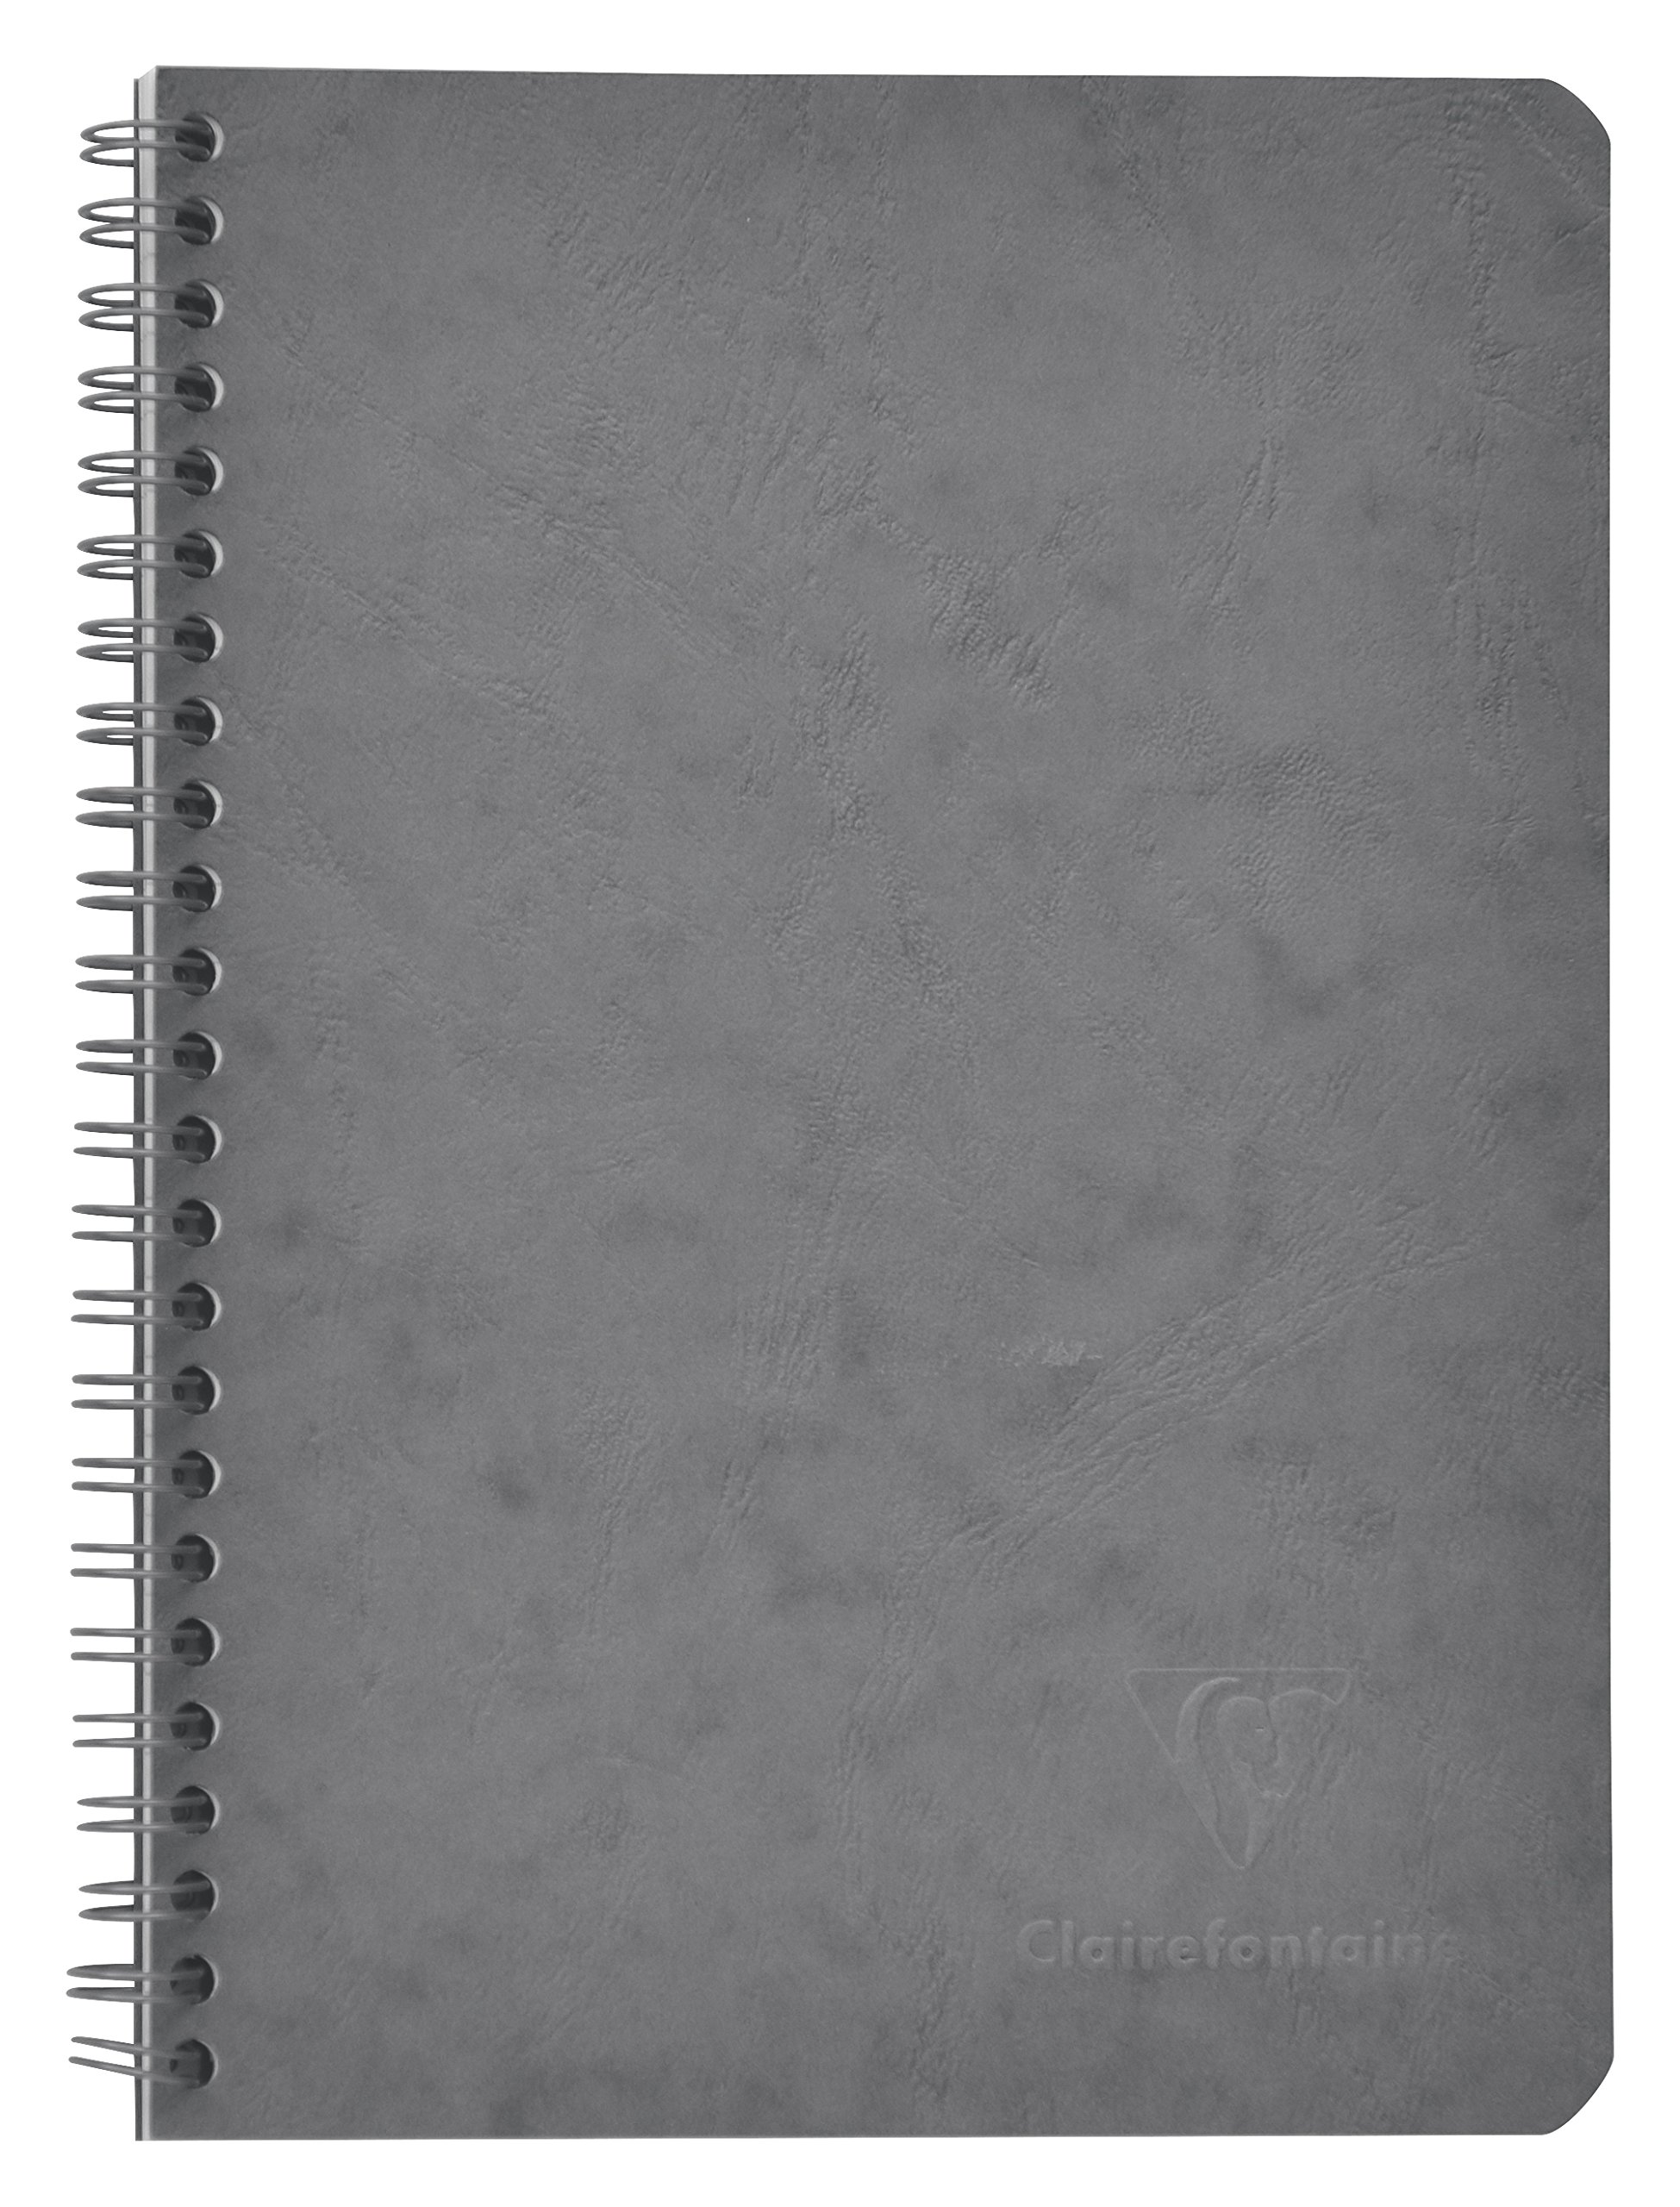 Clairefontaine Age Bag 3American 785665°C Notebook 120Ruled Pages 90g Imitation Leather Grain Cover 14.8x 21cm Grey